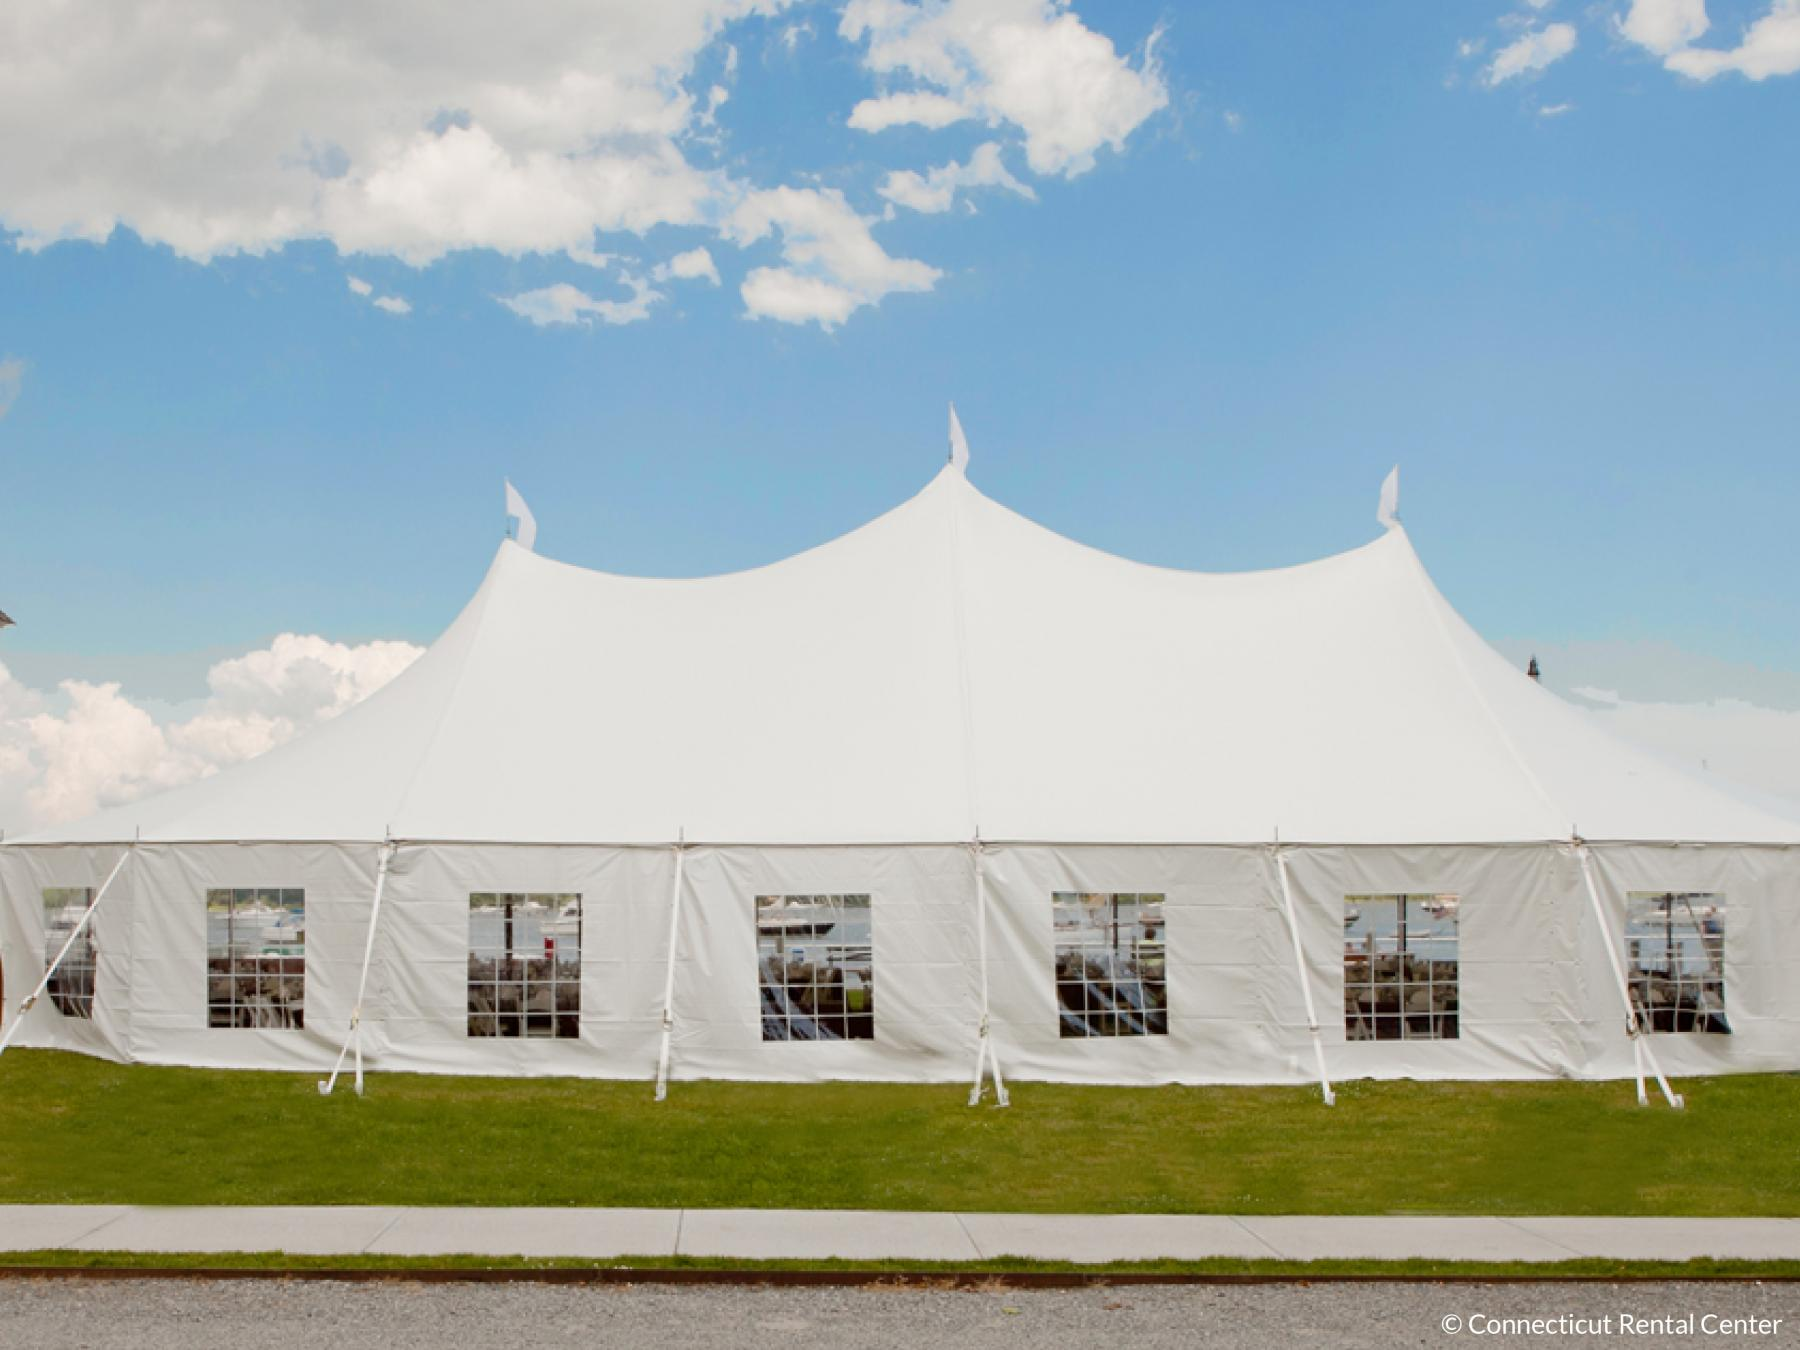 Stillwater tent by the water on nice sunny day